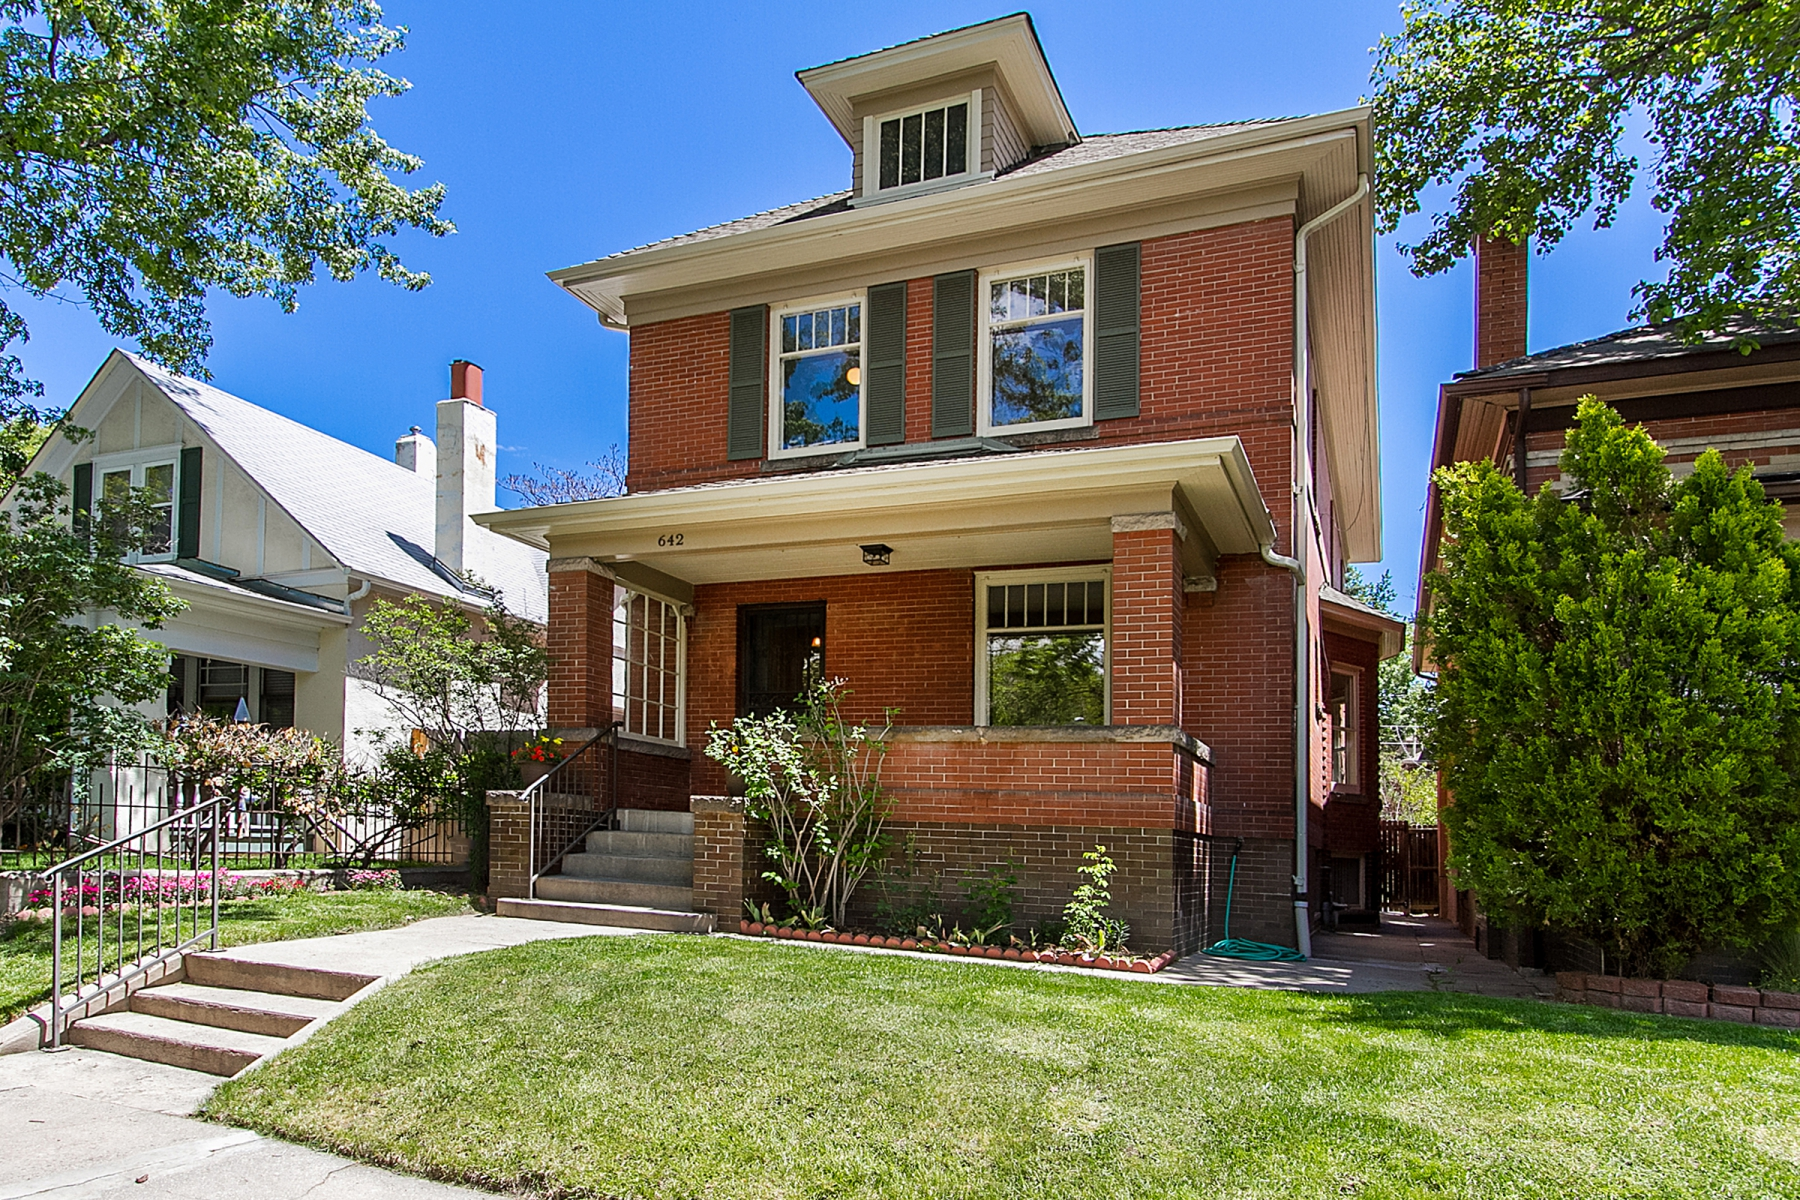 Single Family Home for Sale at 642 High Street Denver, Colorado 80218 United States